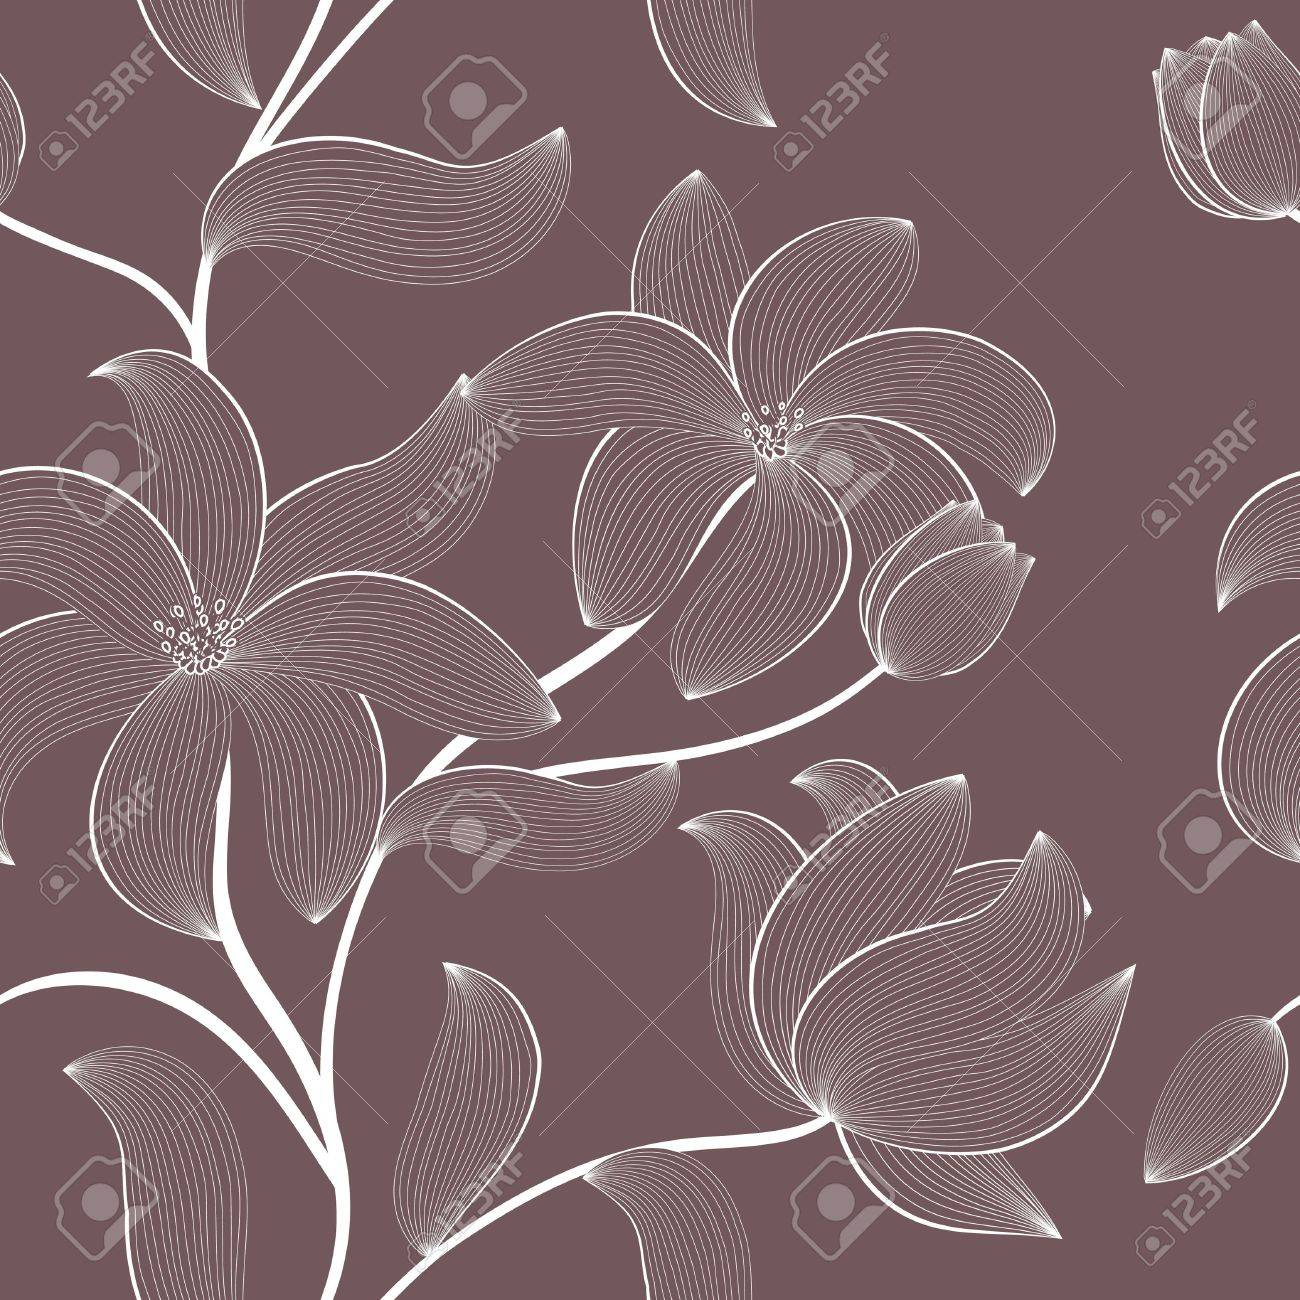 floral seamless pattern with hand-drawn flowers Stock Vector - 13009060